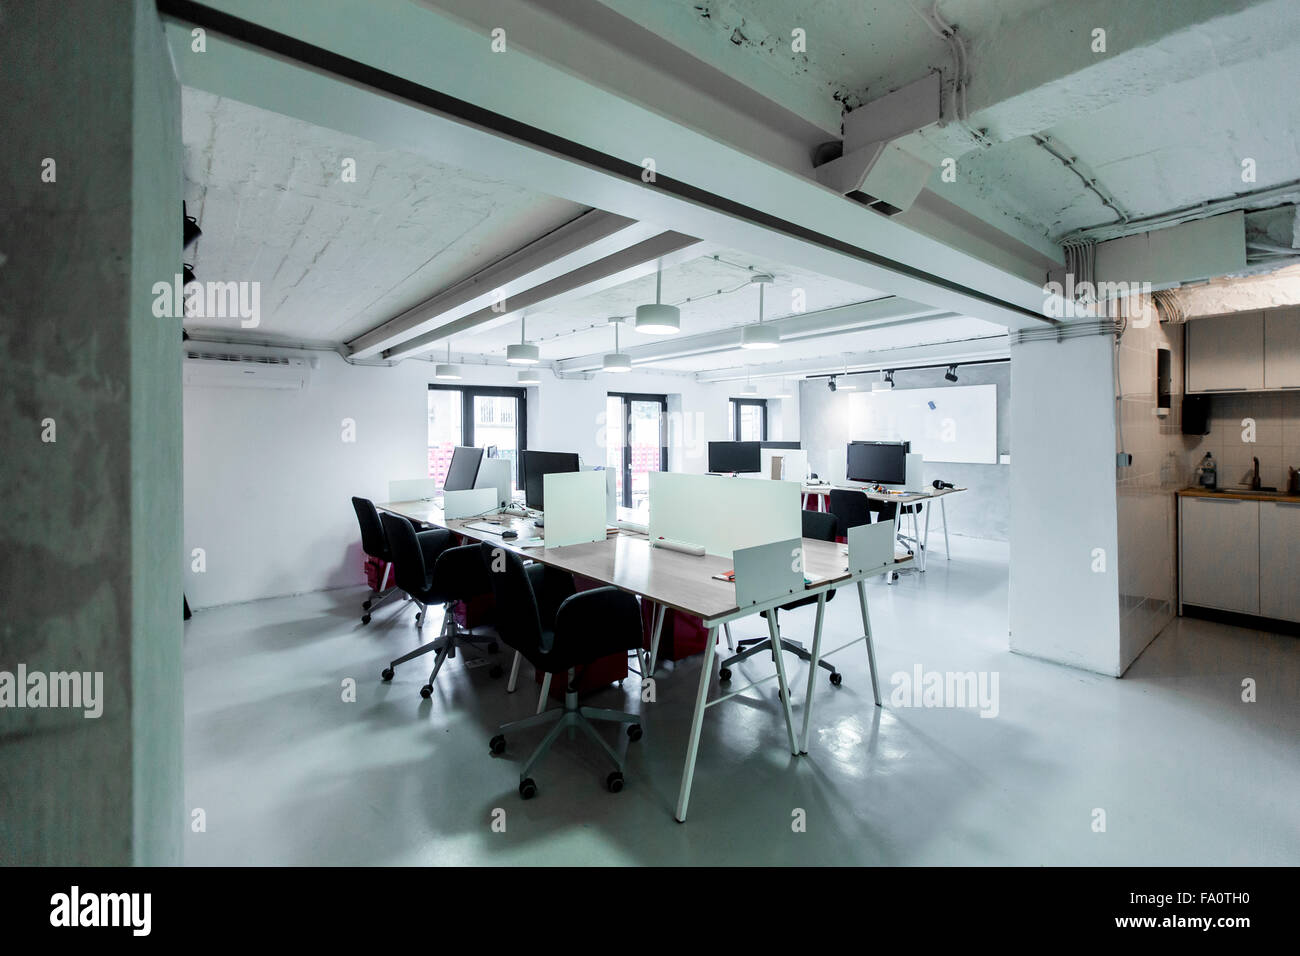 Modern office interior - Stock Image